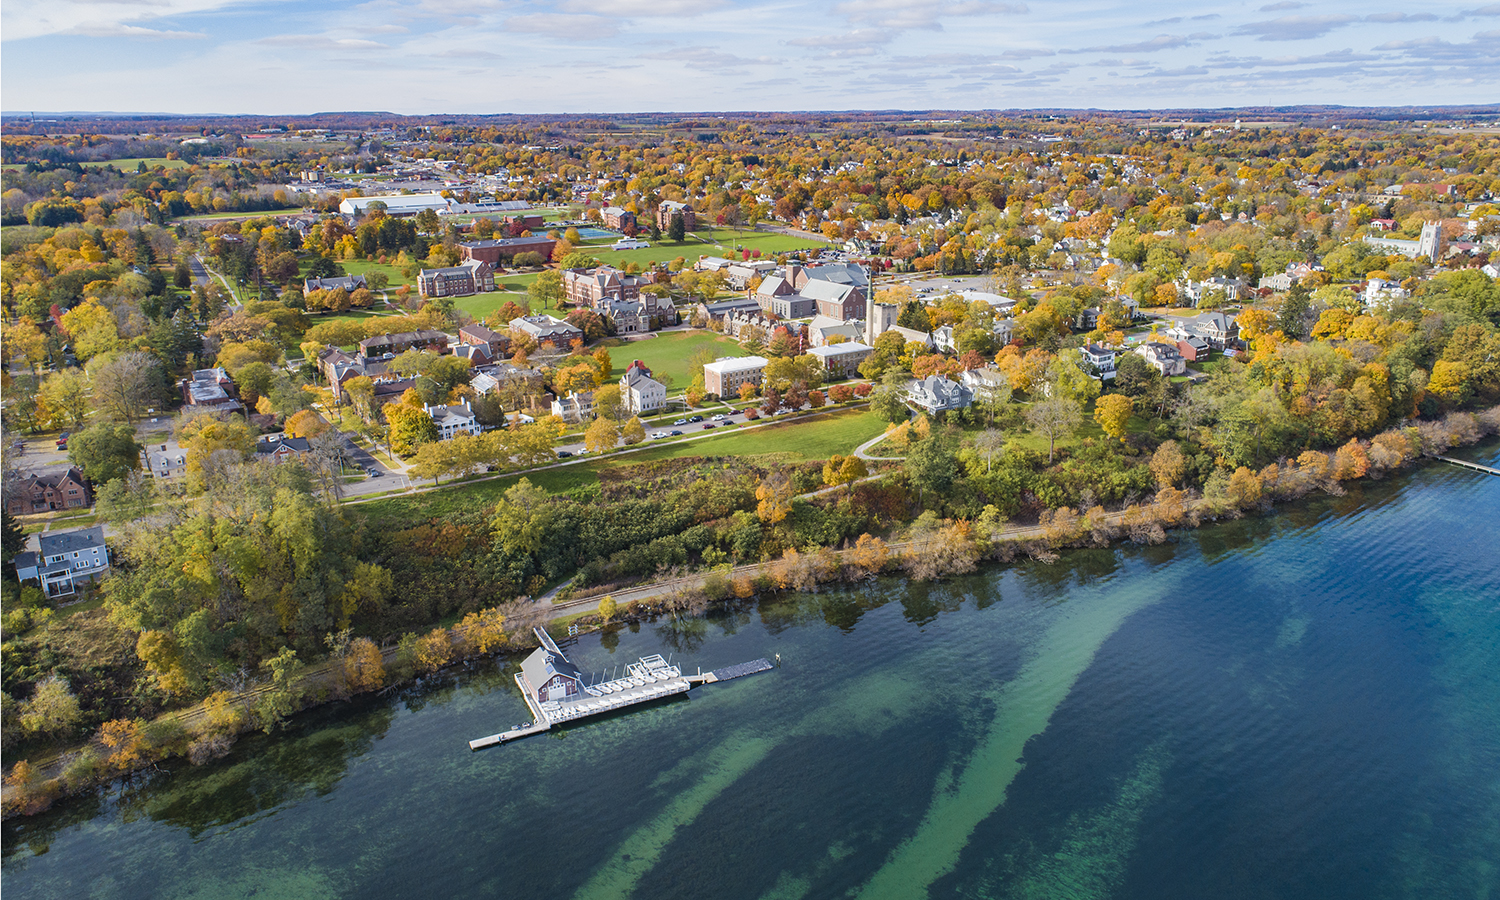 In this special edition of This Week in Photos, we share some of the photos that capture the fall season on campus. In the photo above, an aerial view shows the leaves changing color in the Finger Lakes Region.